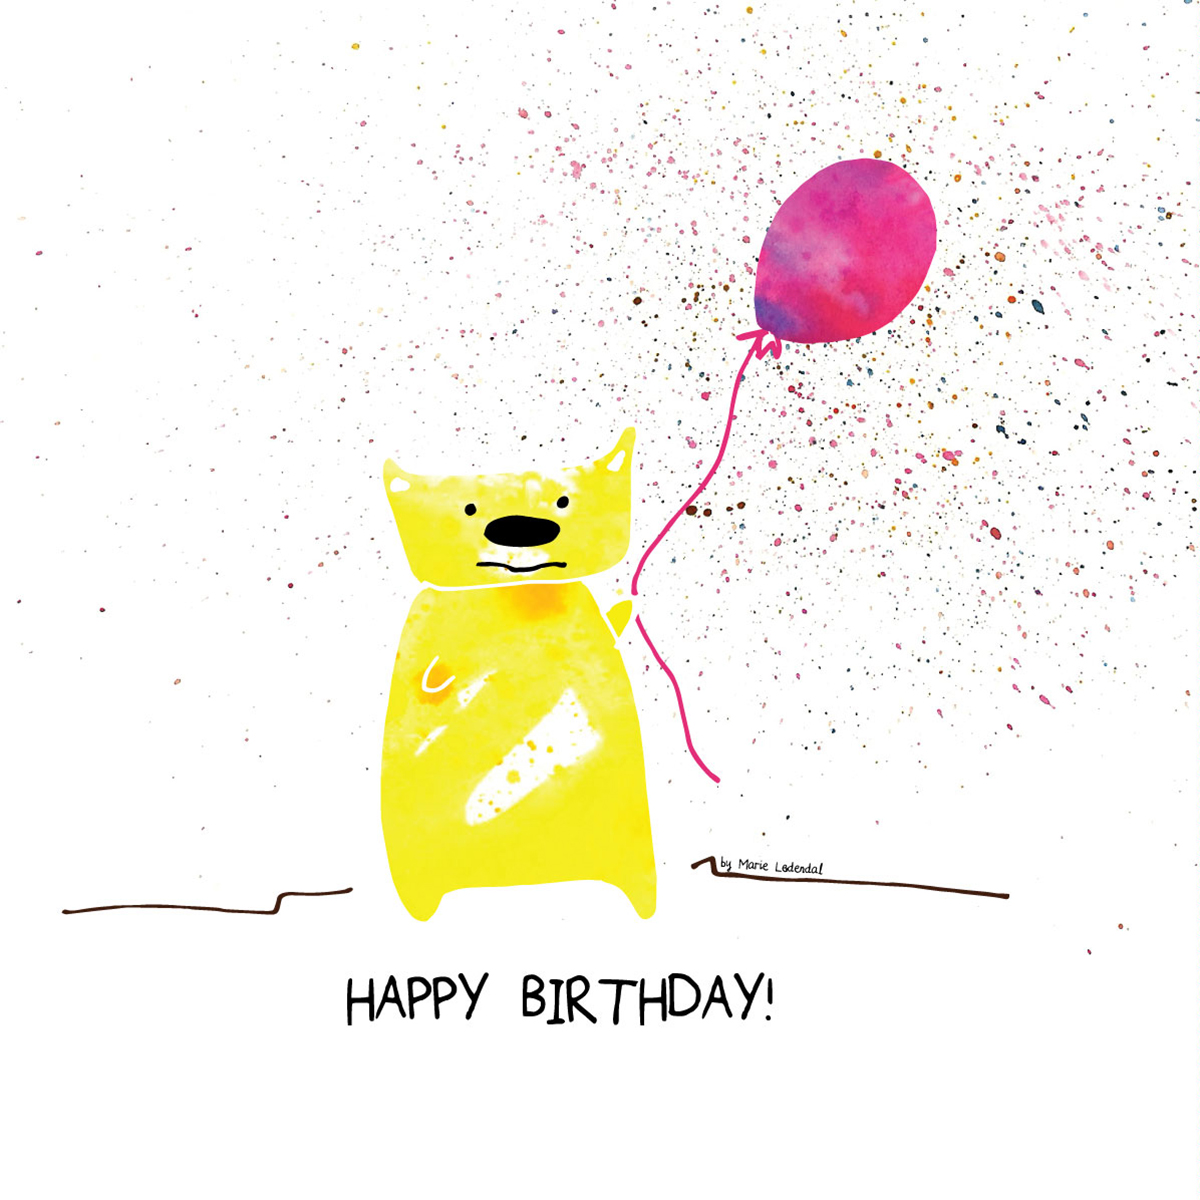 Happy-Birthday-Bear-by-Marie-Ledendal-House-of-Helmi